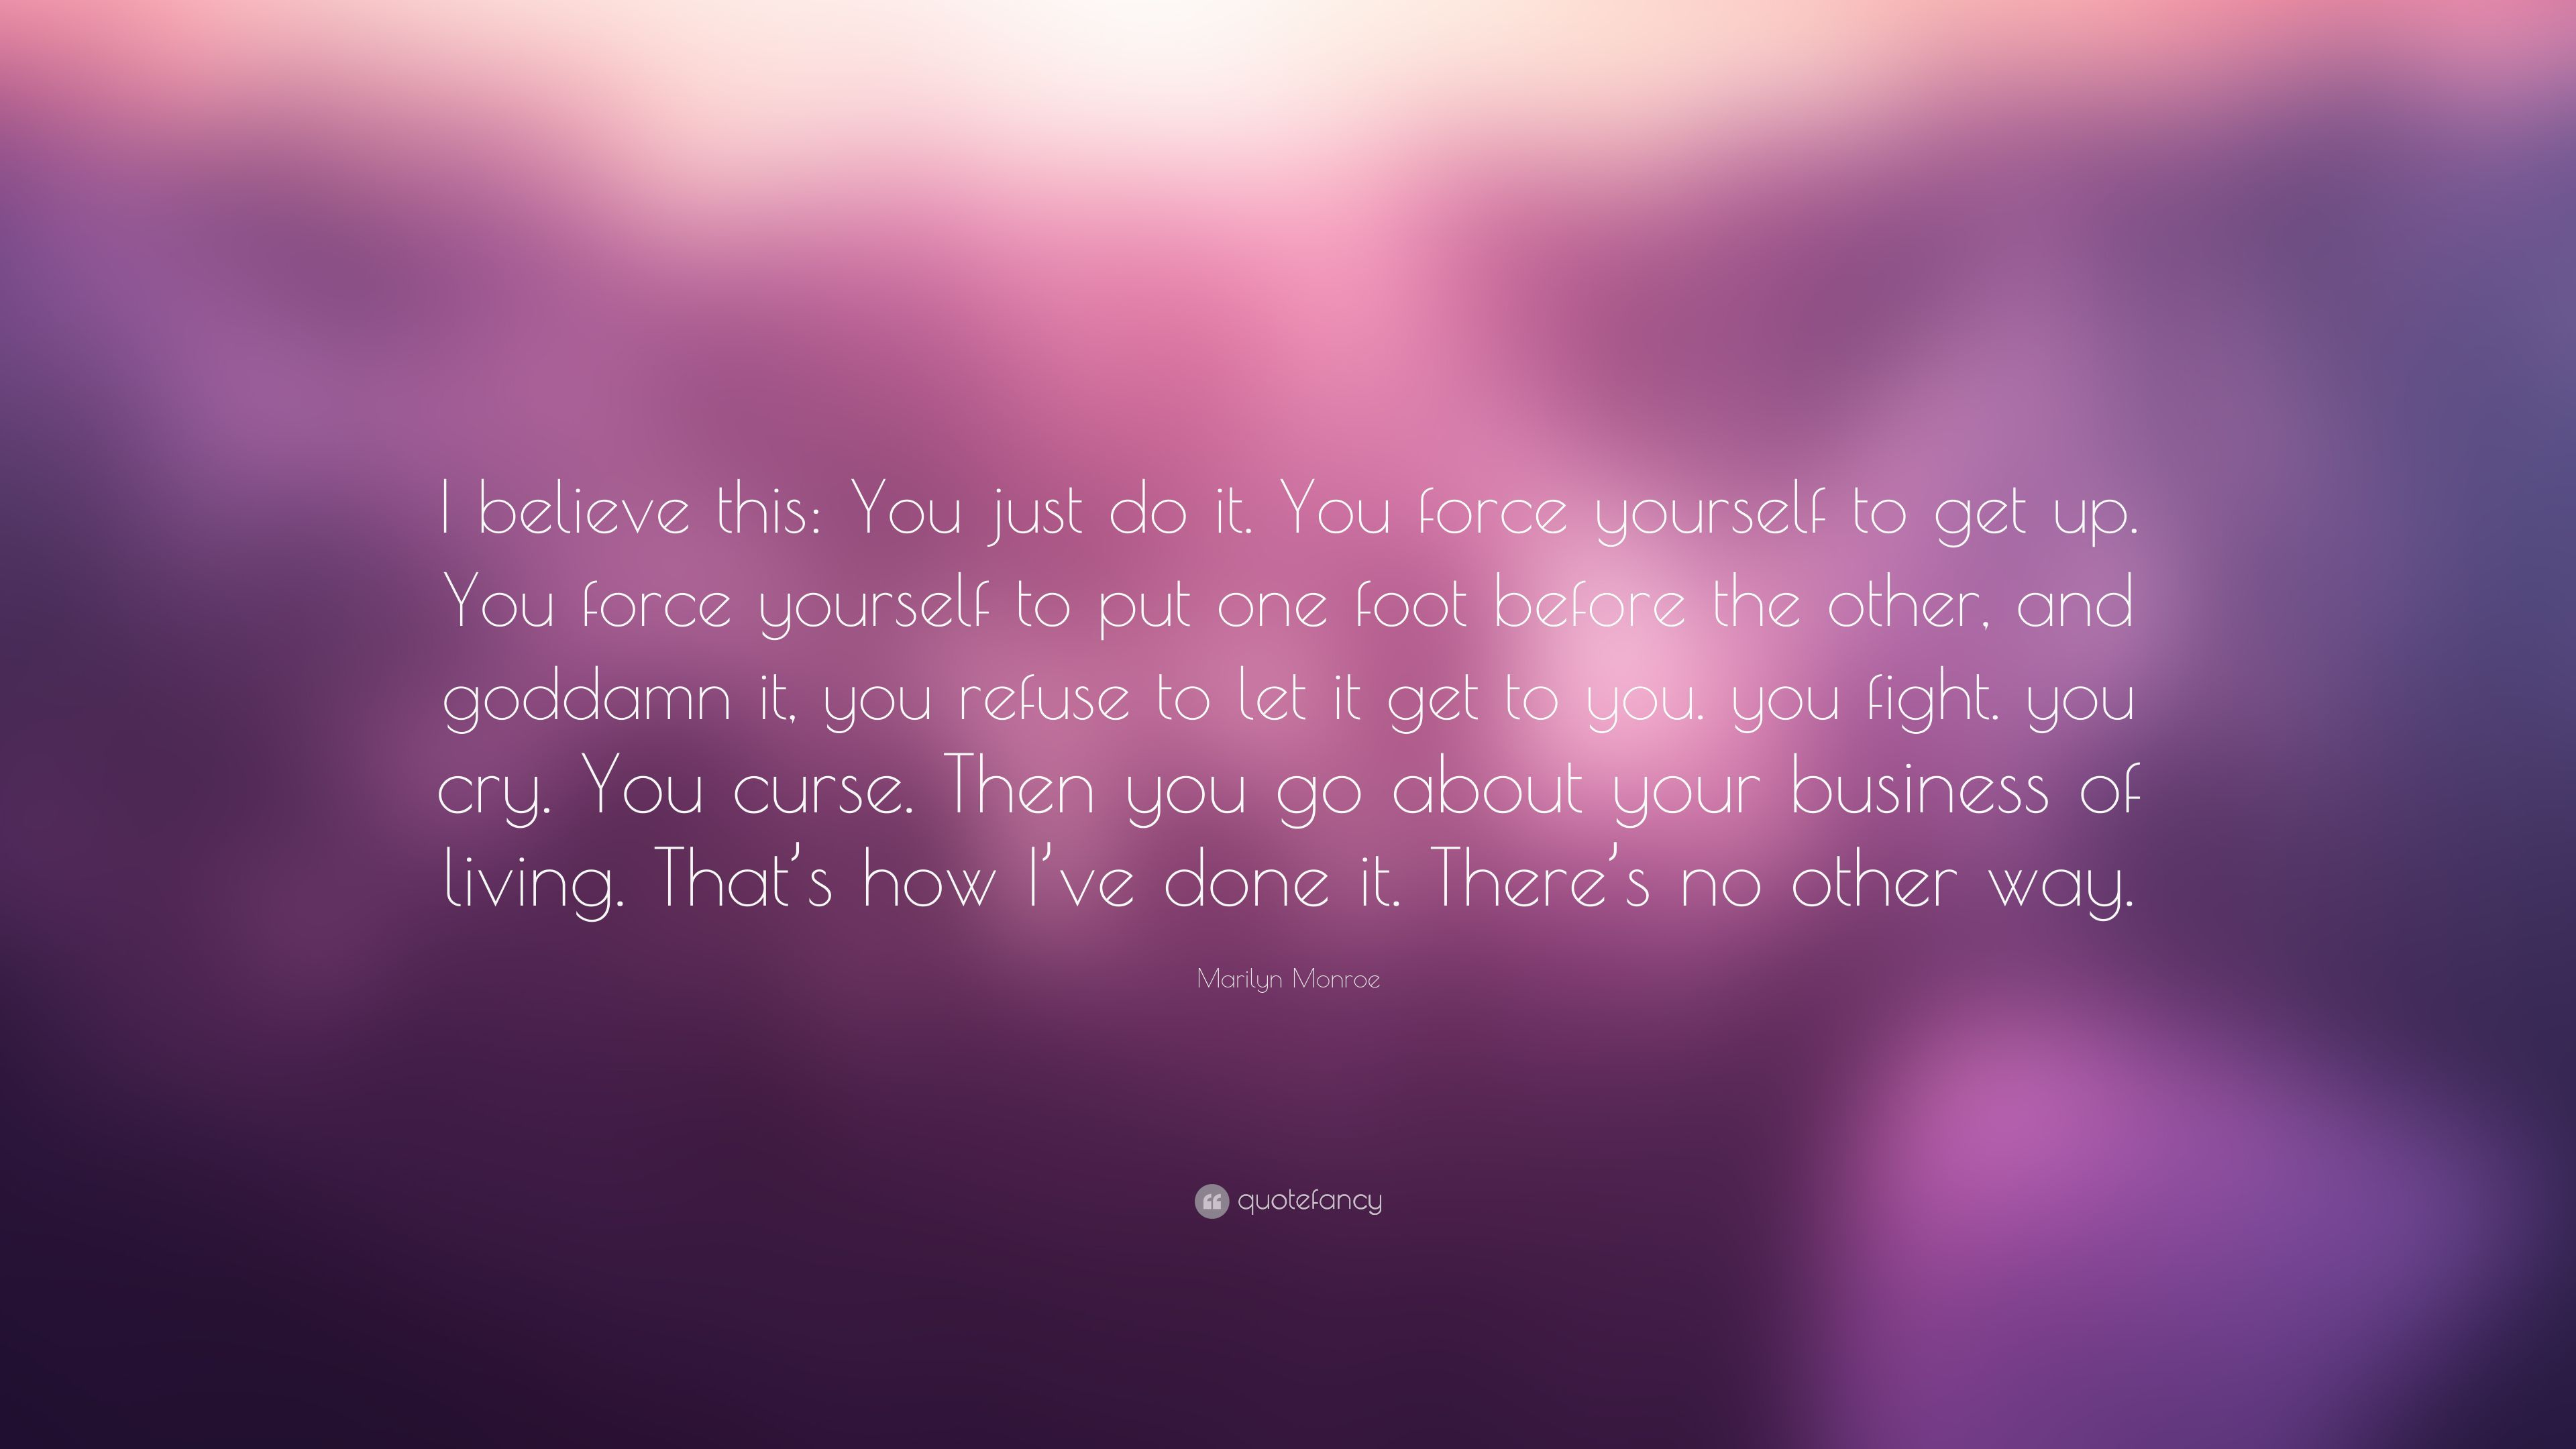 Marilyn monroe quote i believe this you just do it you force marilyn monroe quote i believe this you just do it you force solutioingenieria Image collections